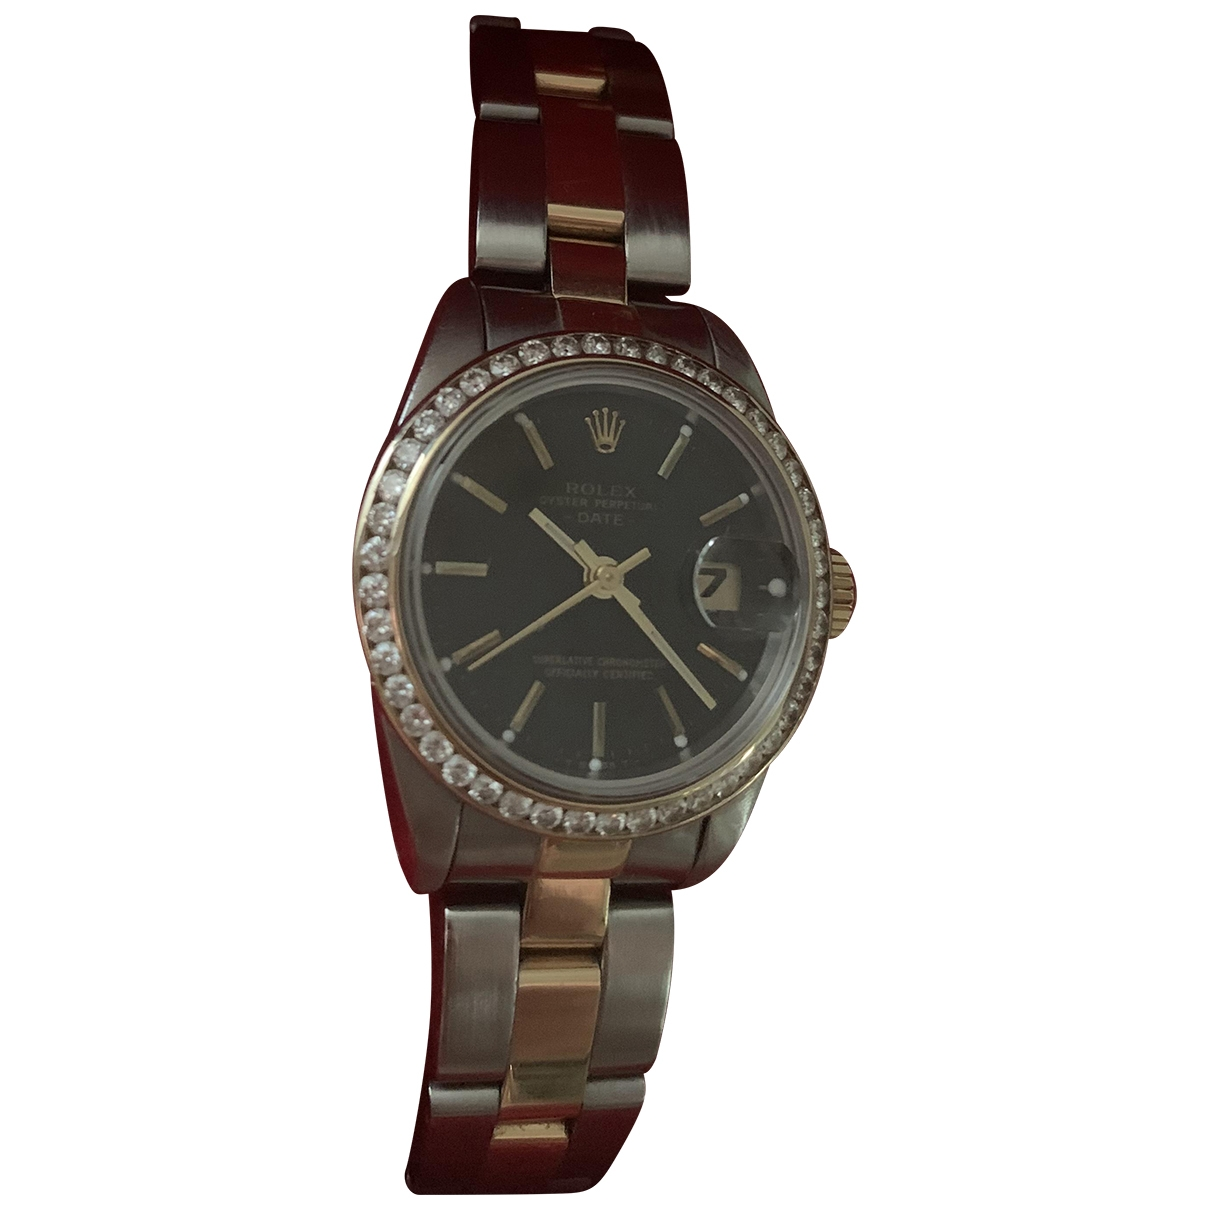 Rolex Lady Oyster Perpetual 26mm Uhr in  Bunt Gold und Stahl